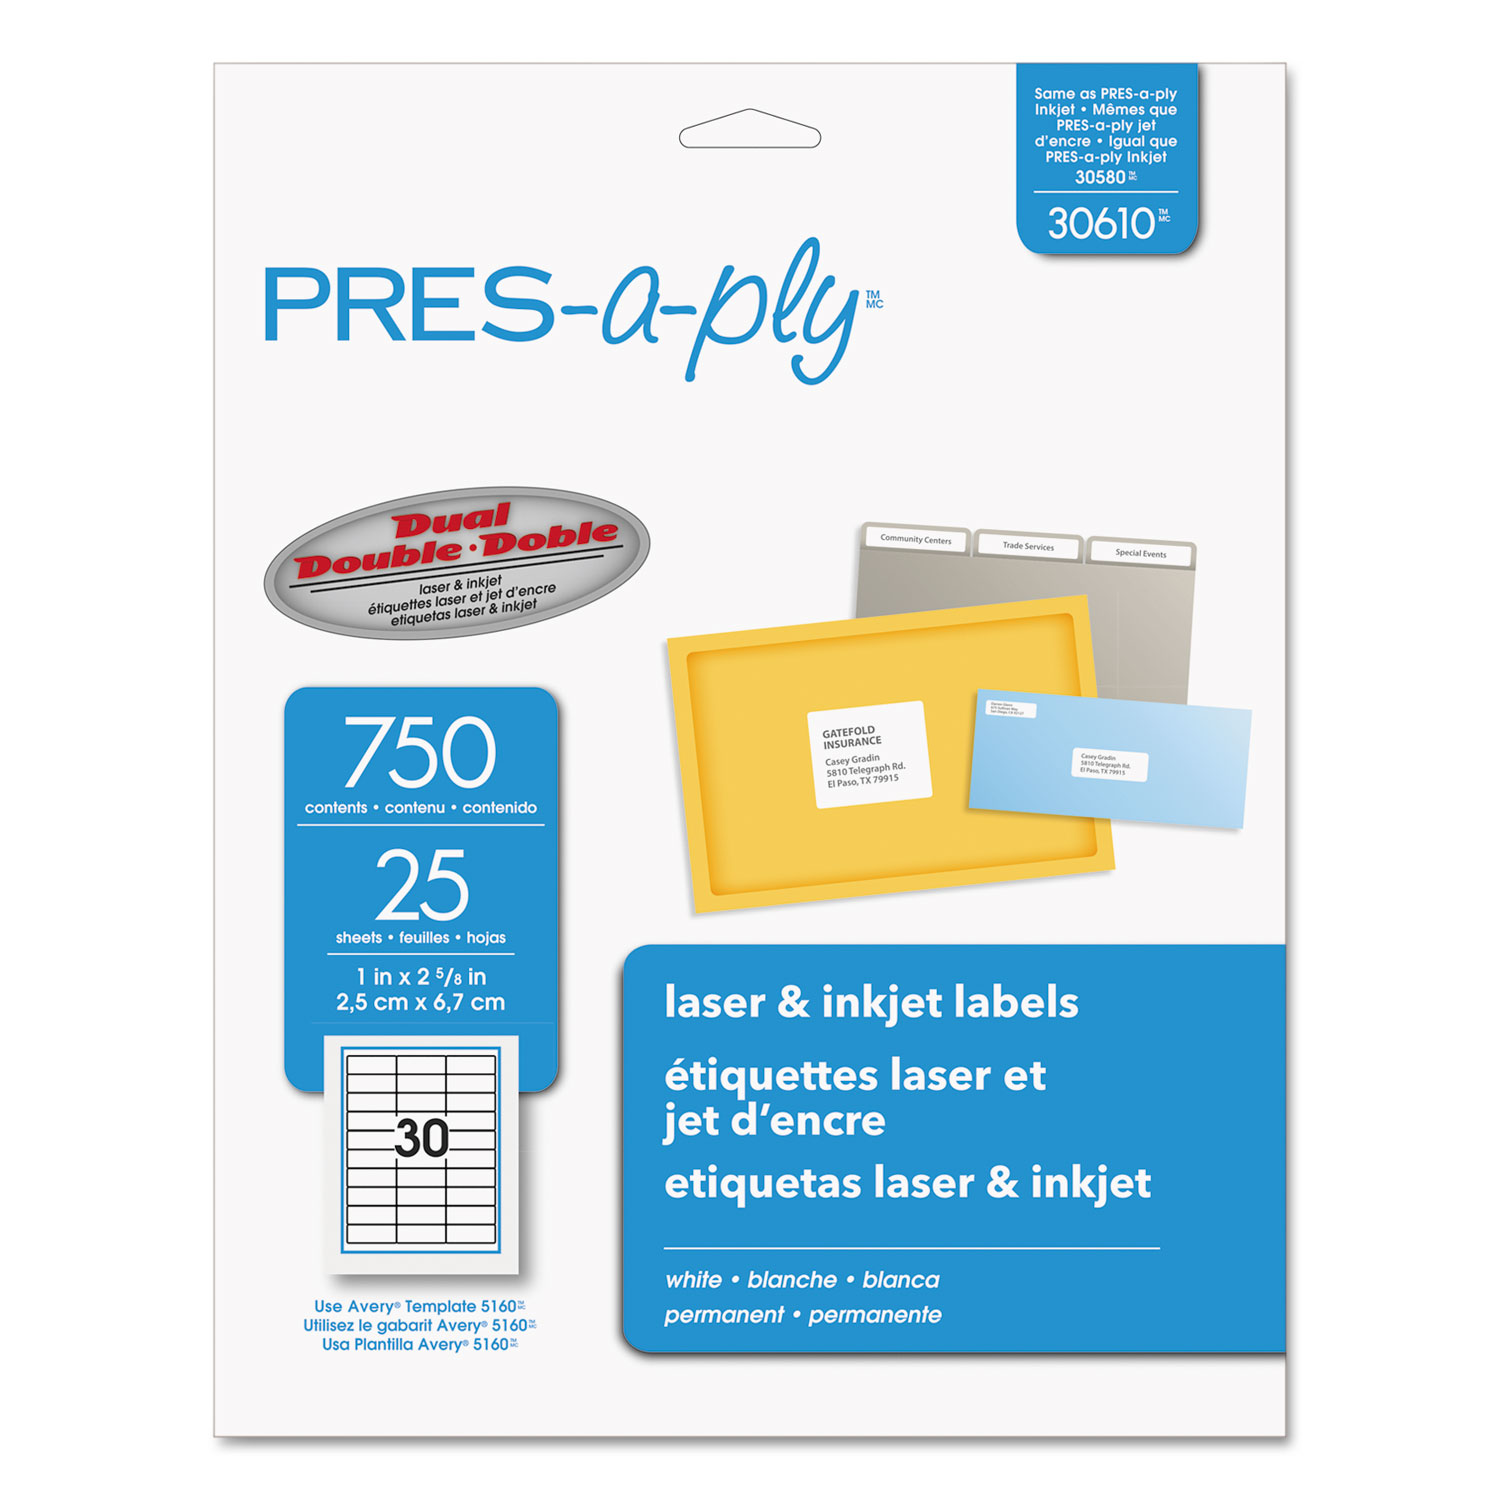 """PRES-a-ply  Labels for Laser and Inkjet Printers, 1"""" x 2-5/8"""" labels, 8-1/2"""" x 11"""" sheets, White, Permanent, 30-up, 25-sheets, 750/PK"""